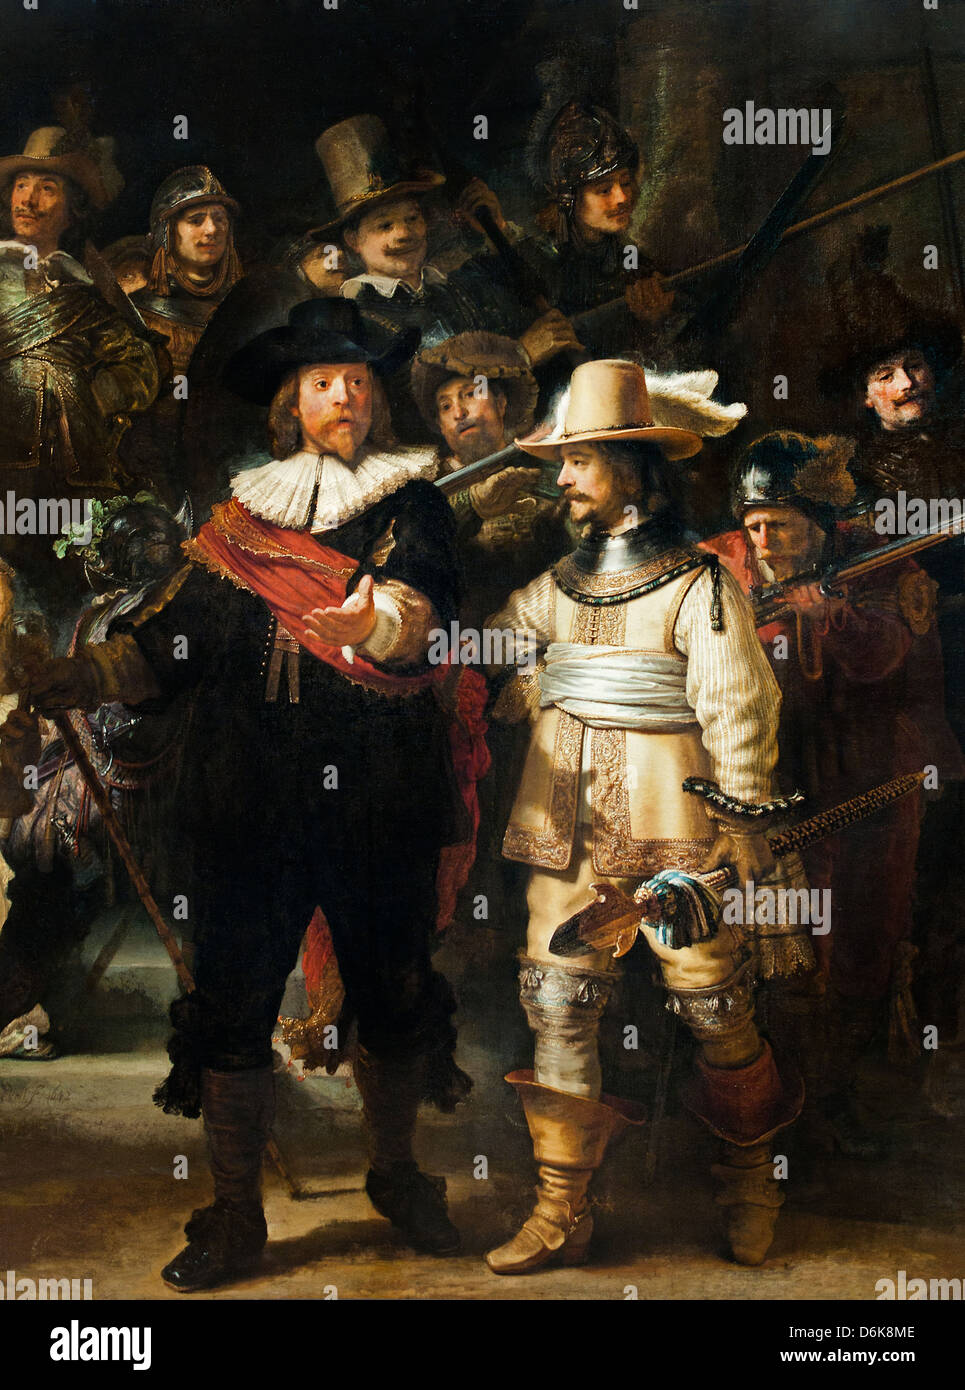 The Night Watch or De Nachtwacht in Dutch1639  Rembrandt Harmenszoon van Rijn  1606–1669  Amsterdam Netherlands - Stock Image